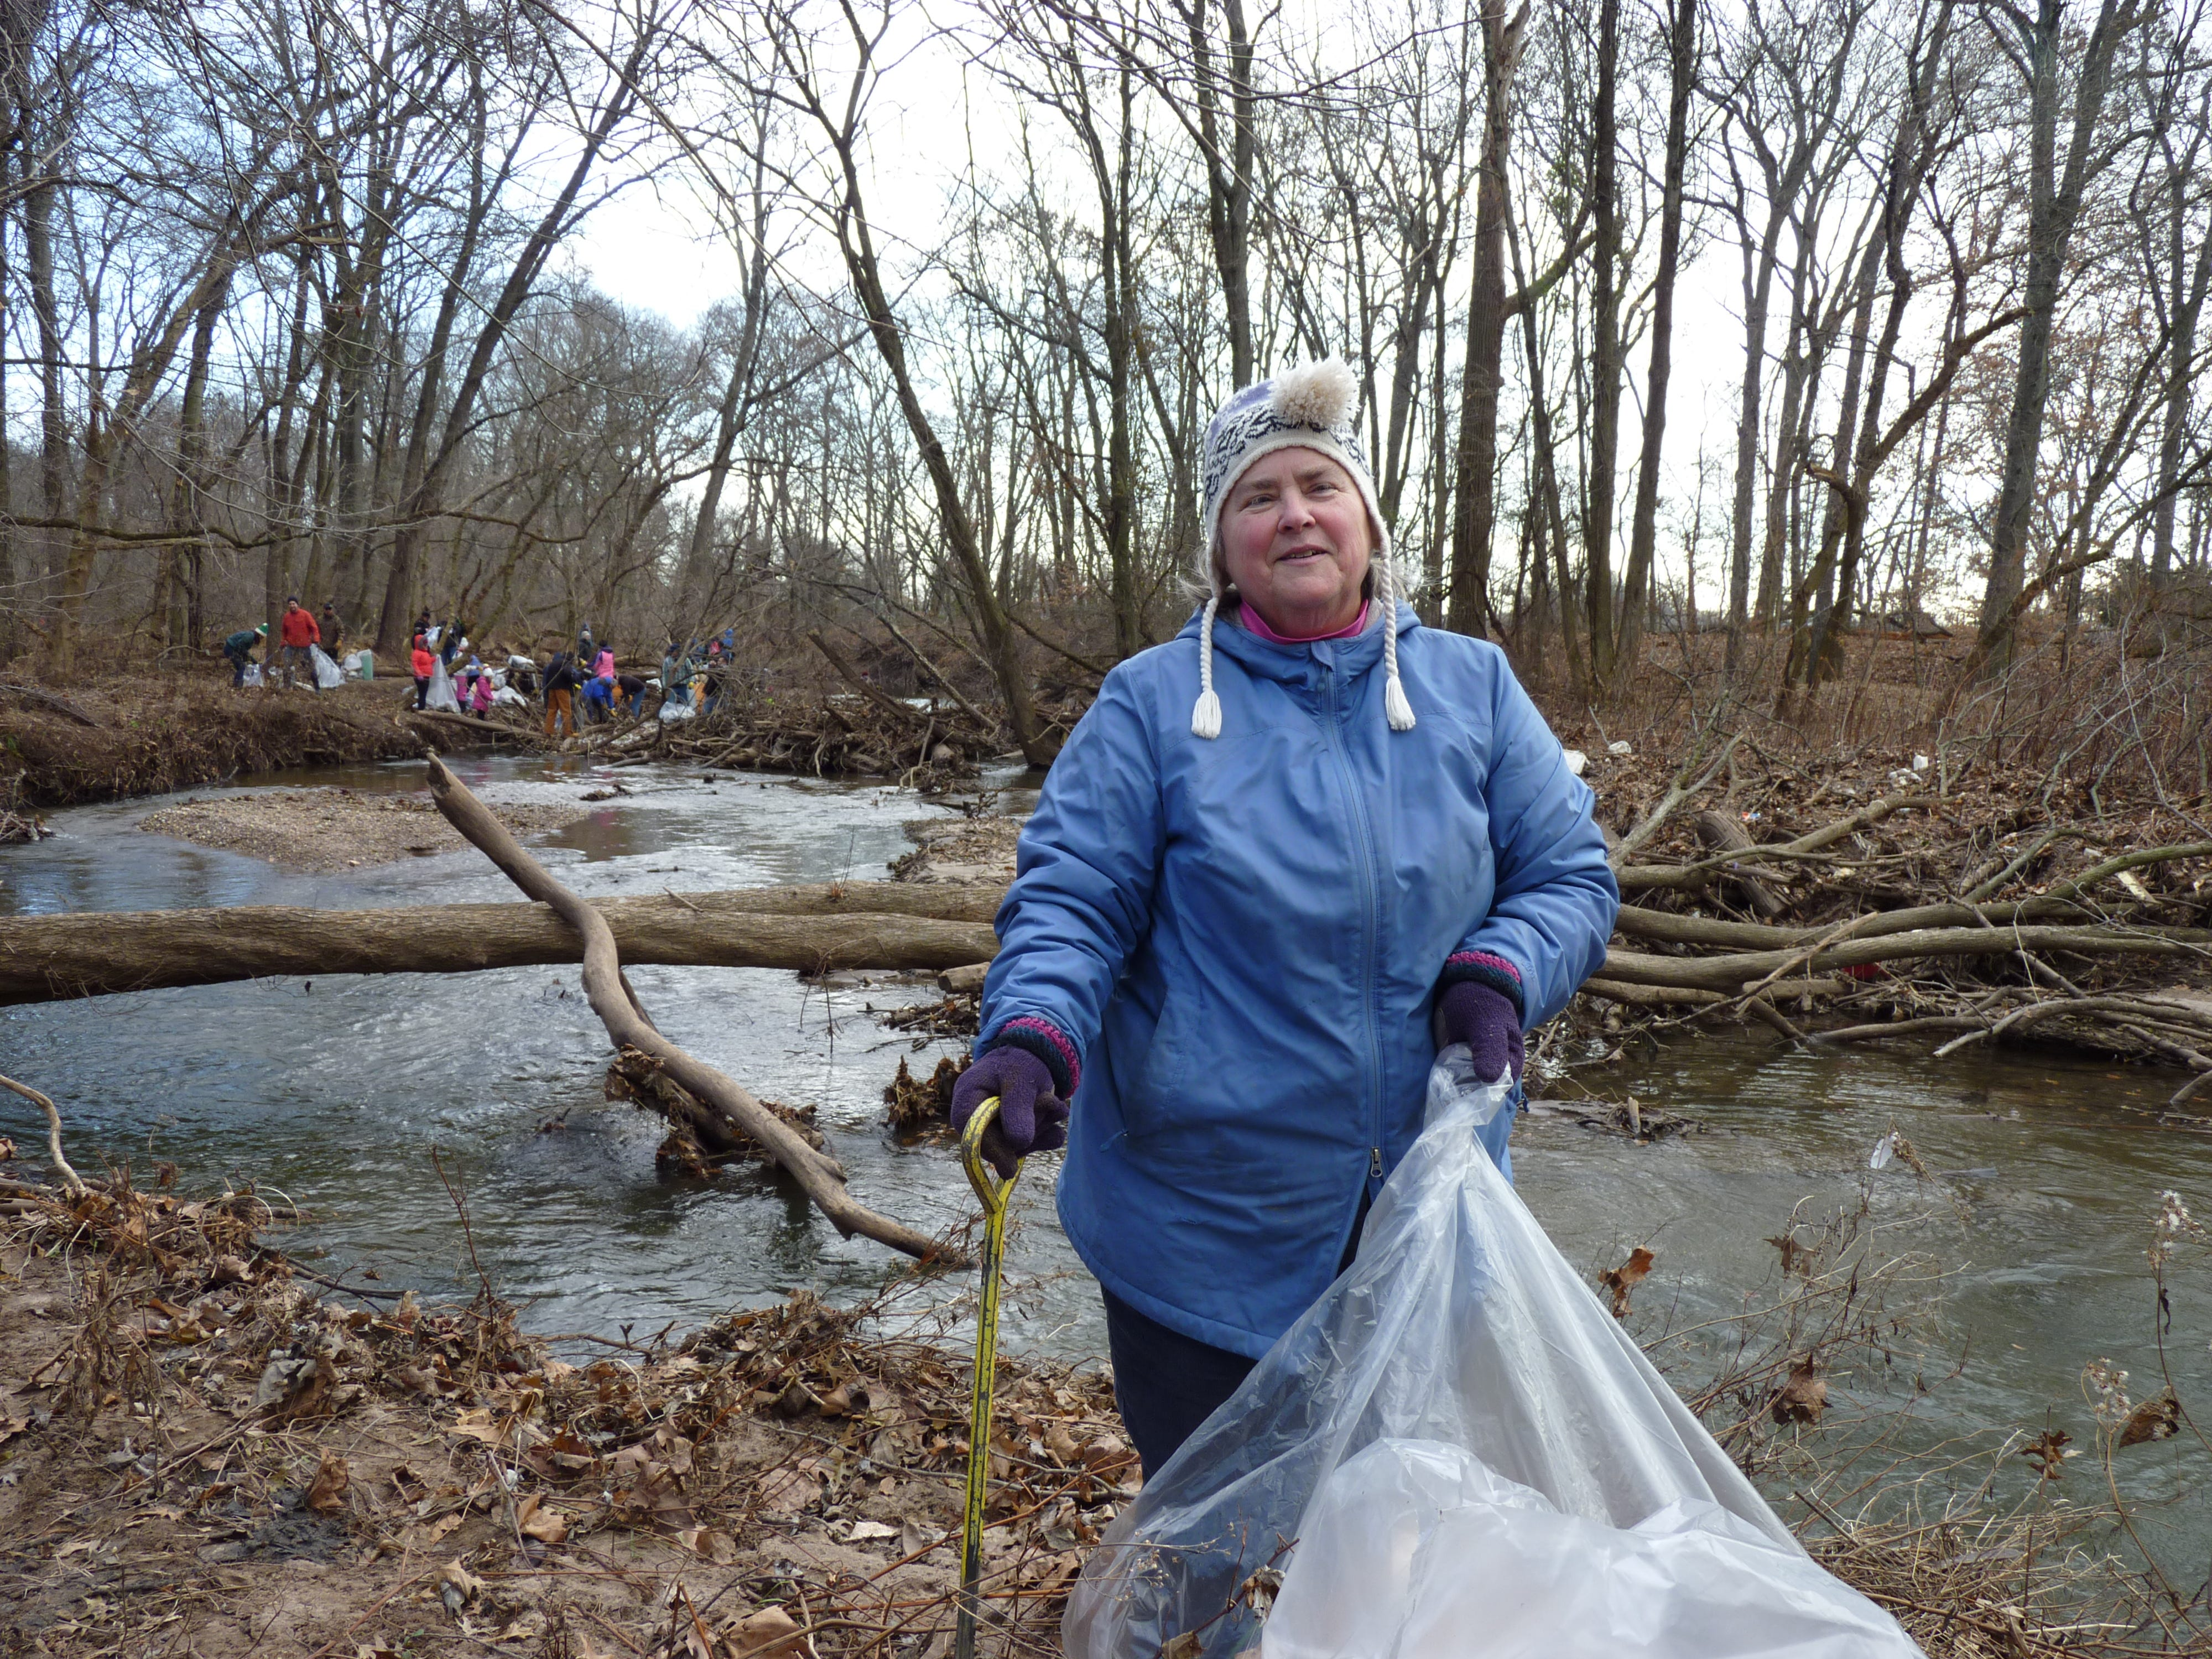 Cathy, a volunteer, helped clean up pollution in the Green Brook on Dec. 8, 2018.